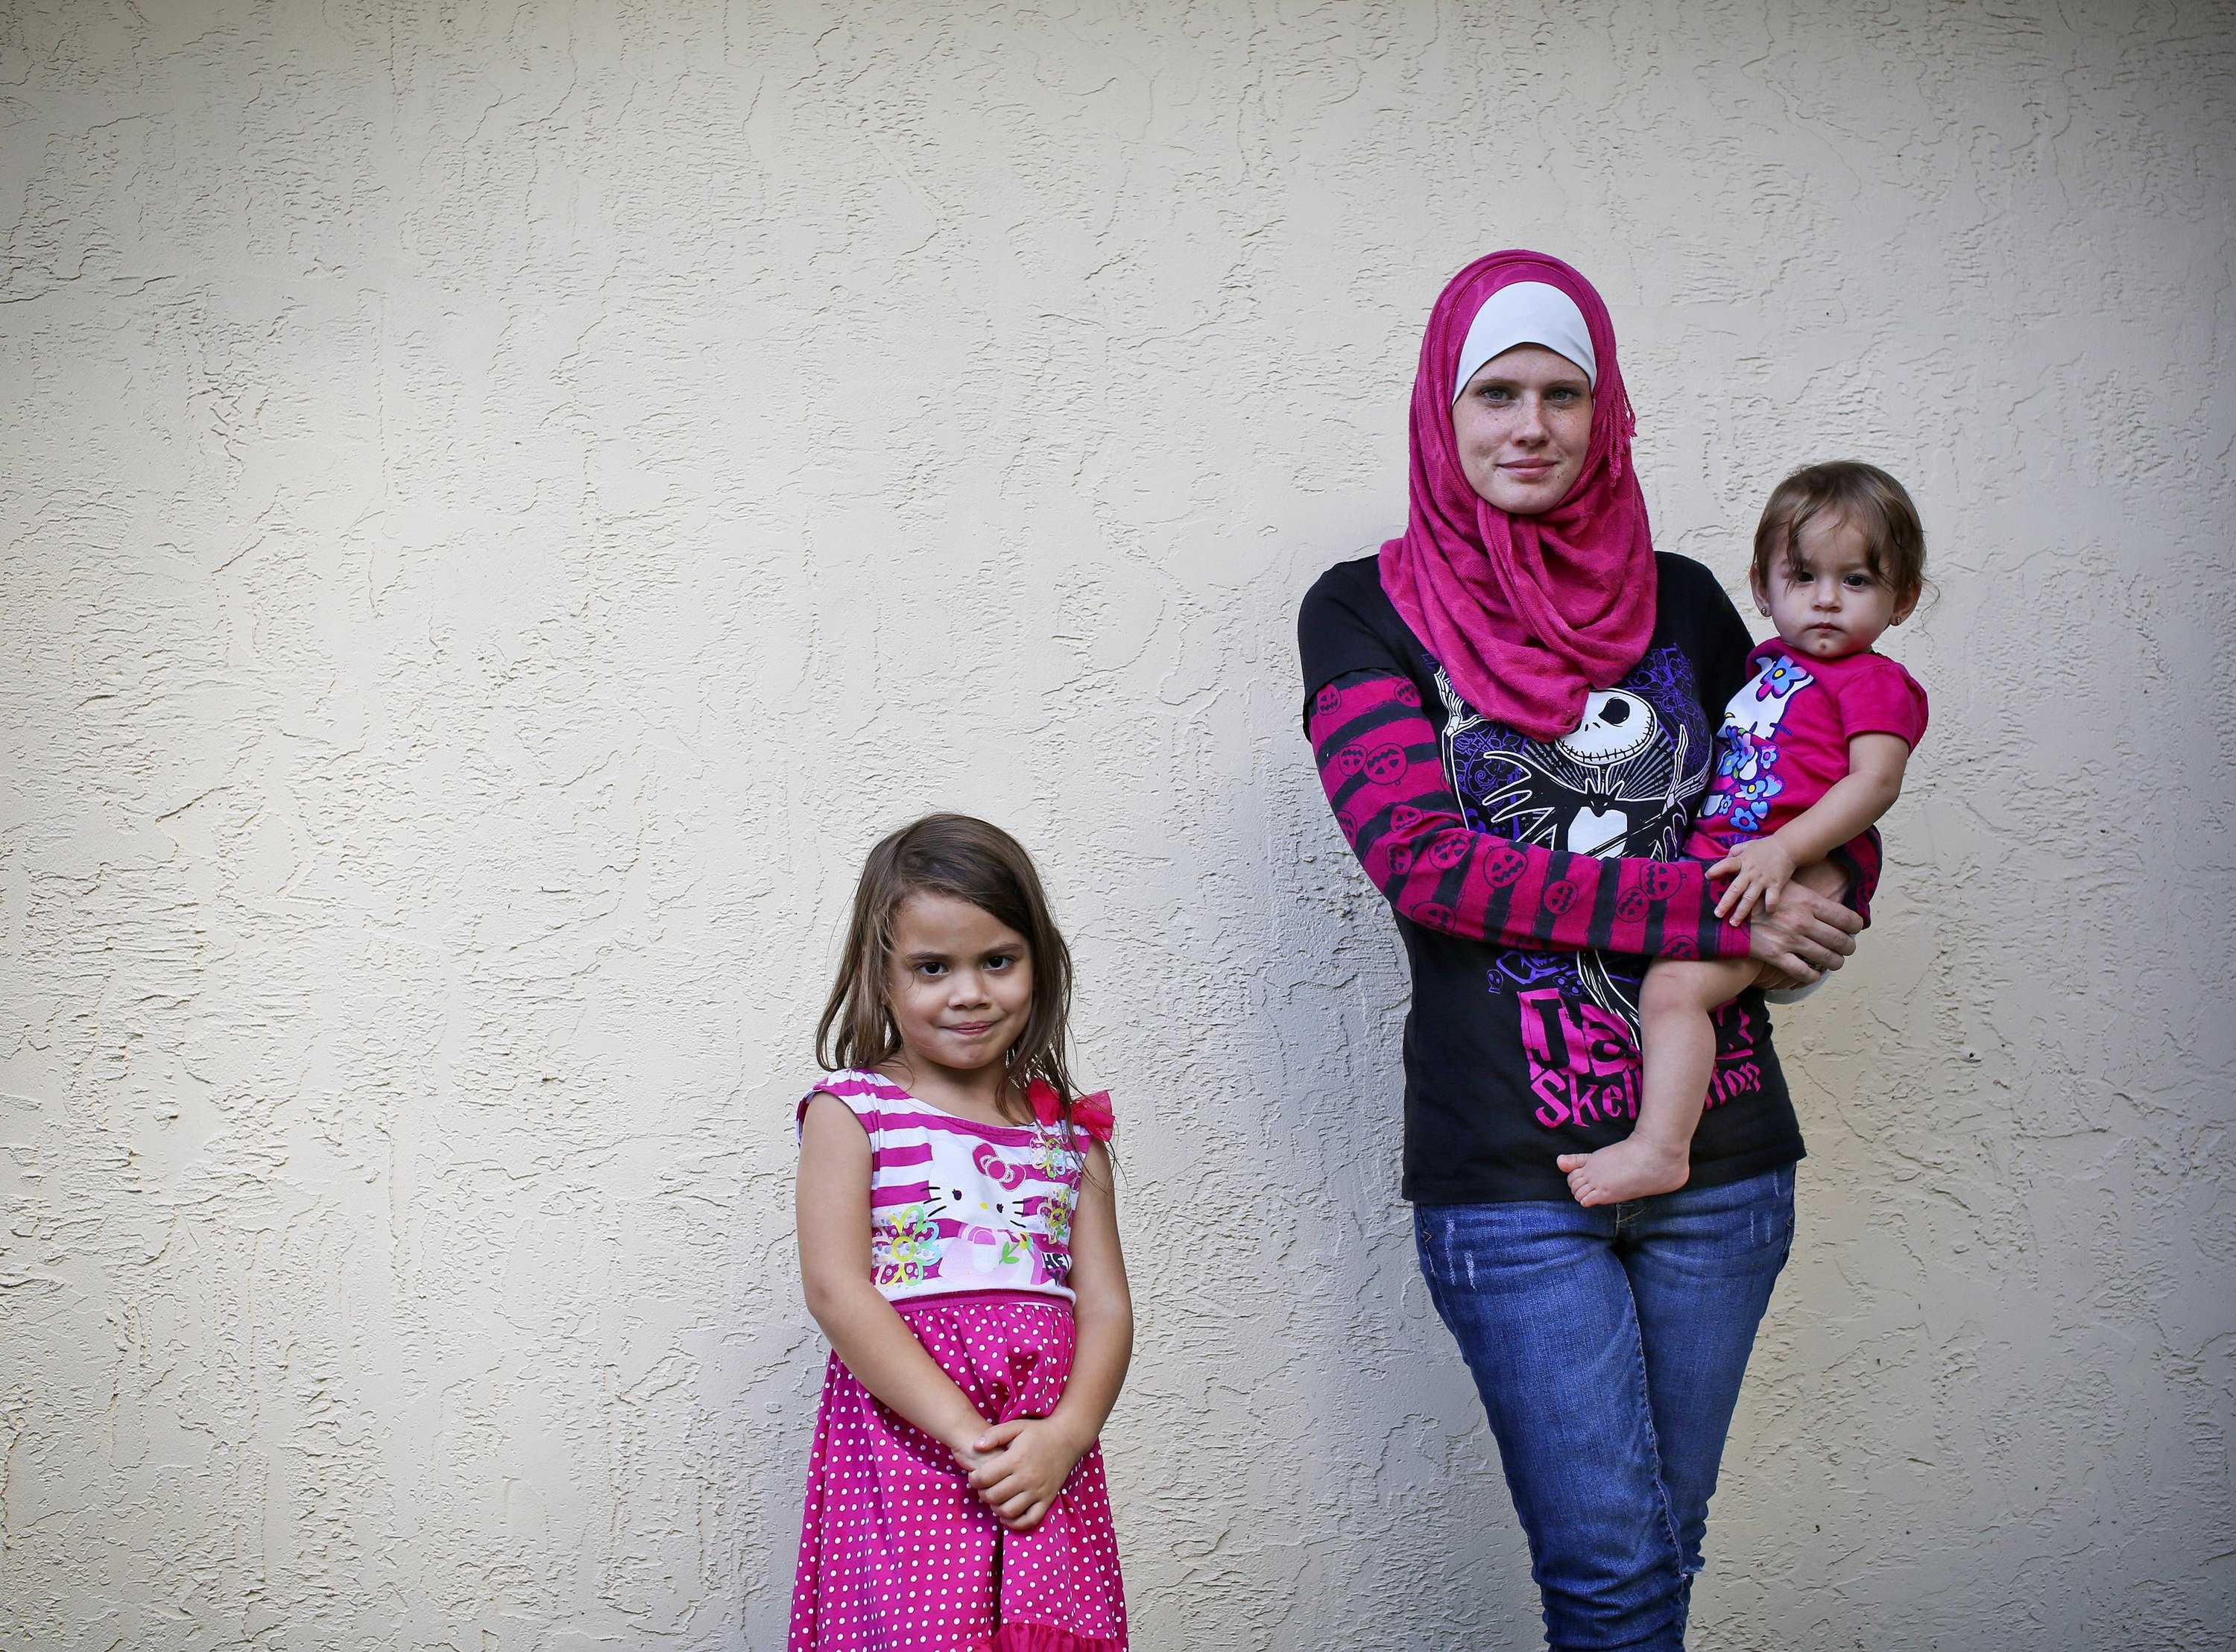 Rose Garcia-Corrigan and her daughters A'isha, left 4, and Tziphorah, 1, at their Kissimmee, Florida, home on Oct. 31, 2013. Rose, a Muslim, believes that she was the victim of a hate crime after another driver tried to run her off of the road while mocking her head scarf. (Jacob Langston/Orlando Sentinel/MCT)